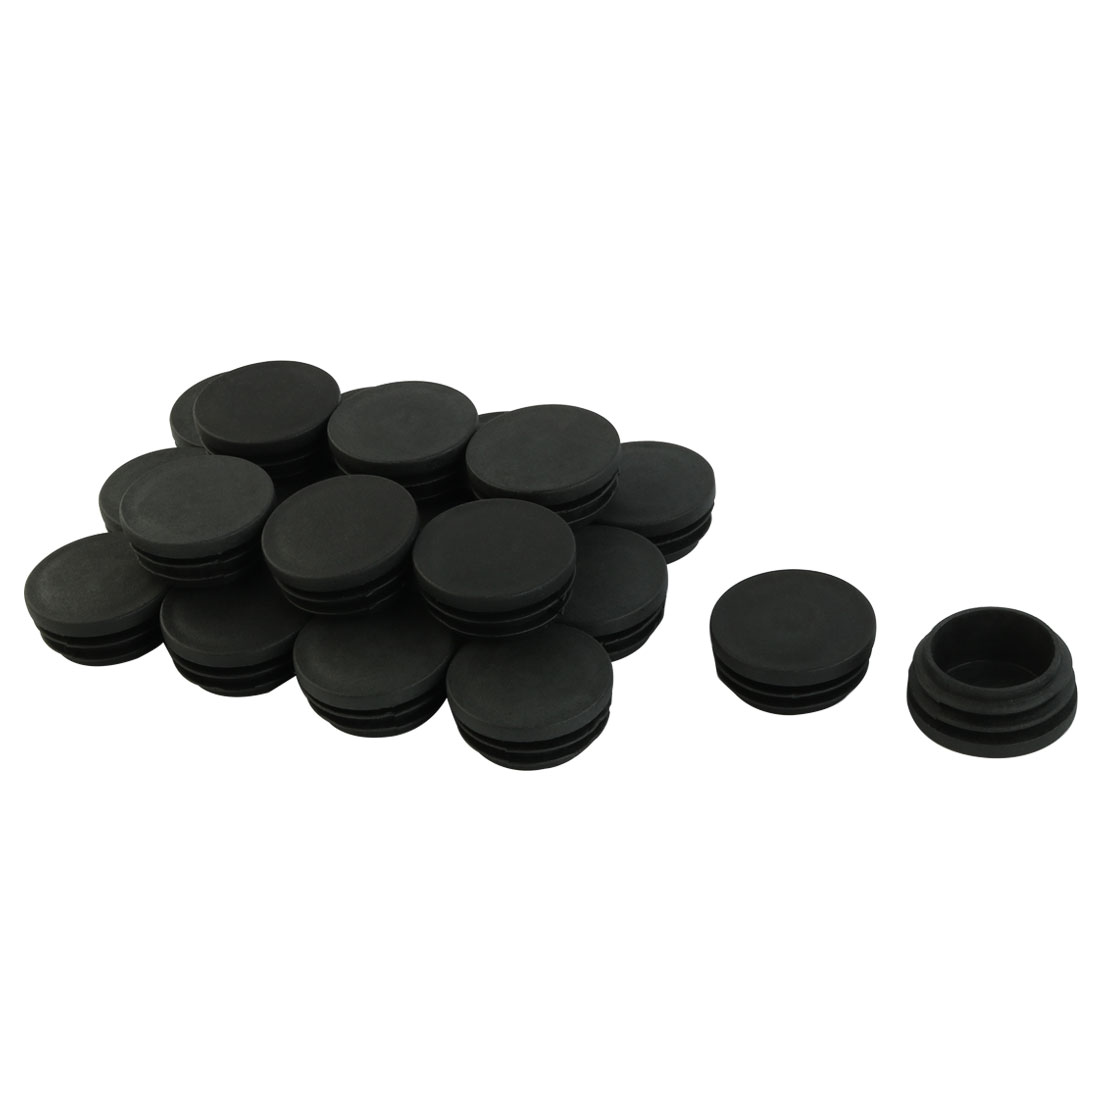 20 Pcs Furniture Black Plastic Screw Type Cap Cover 19mm Diameter